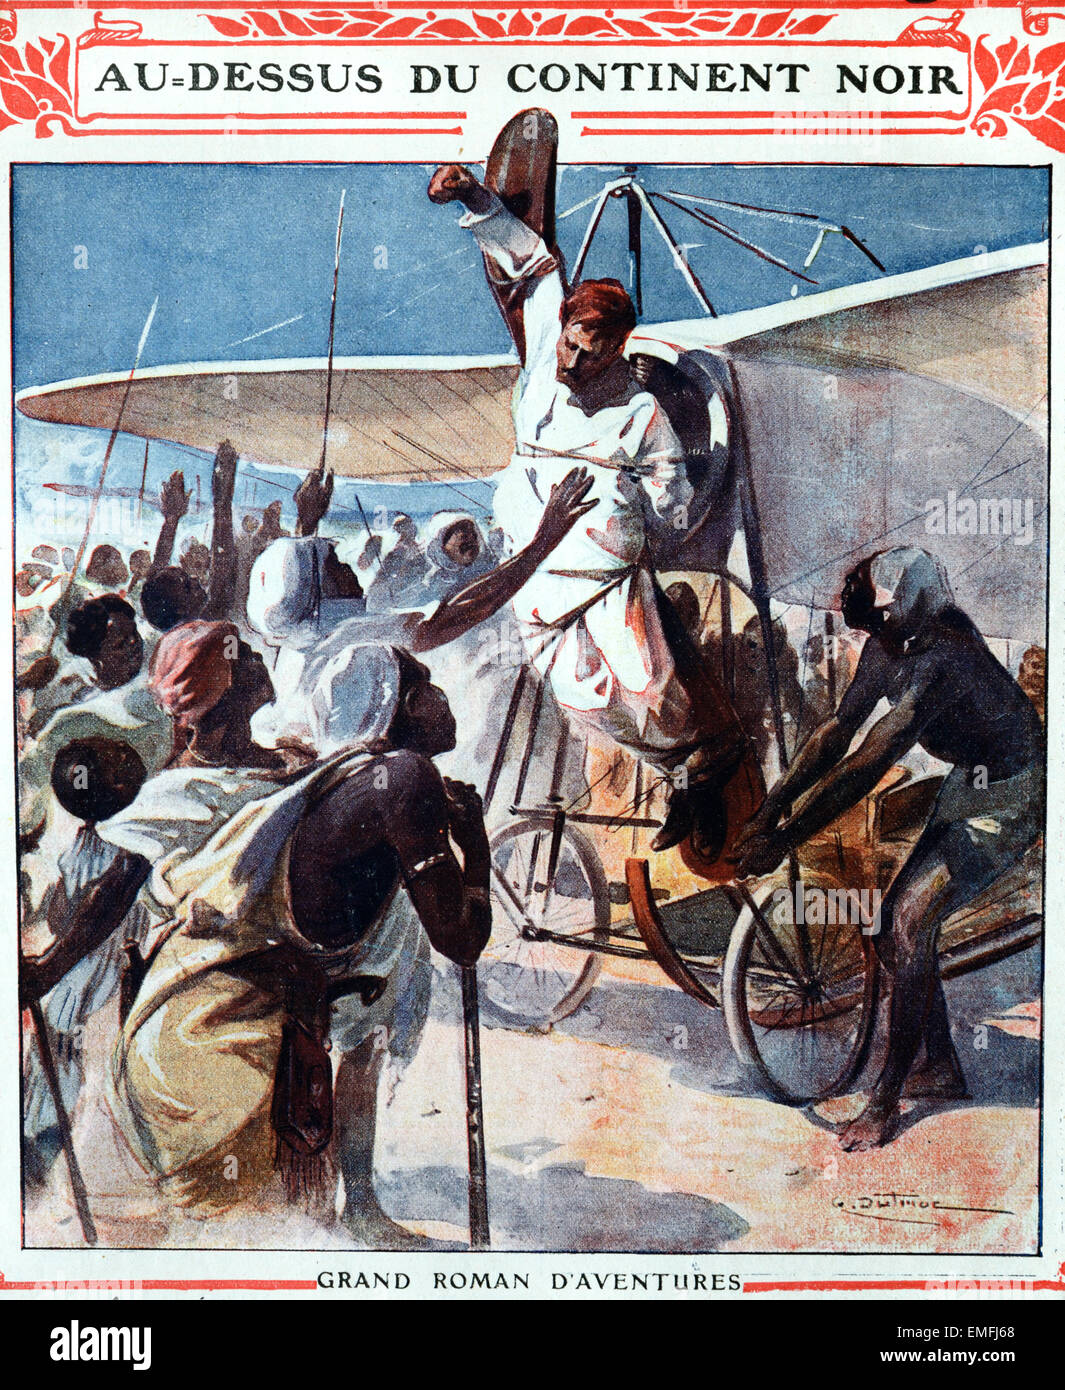 Daredevil Pilot Stunt Man or Aviator Attached to Early Flying Machine or Airplane or Aeroplane in Africa 1911. Book - Stock Image